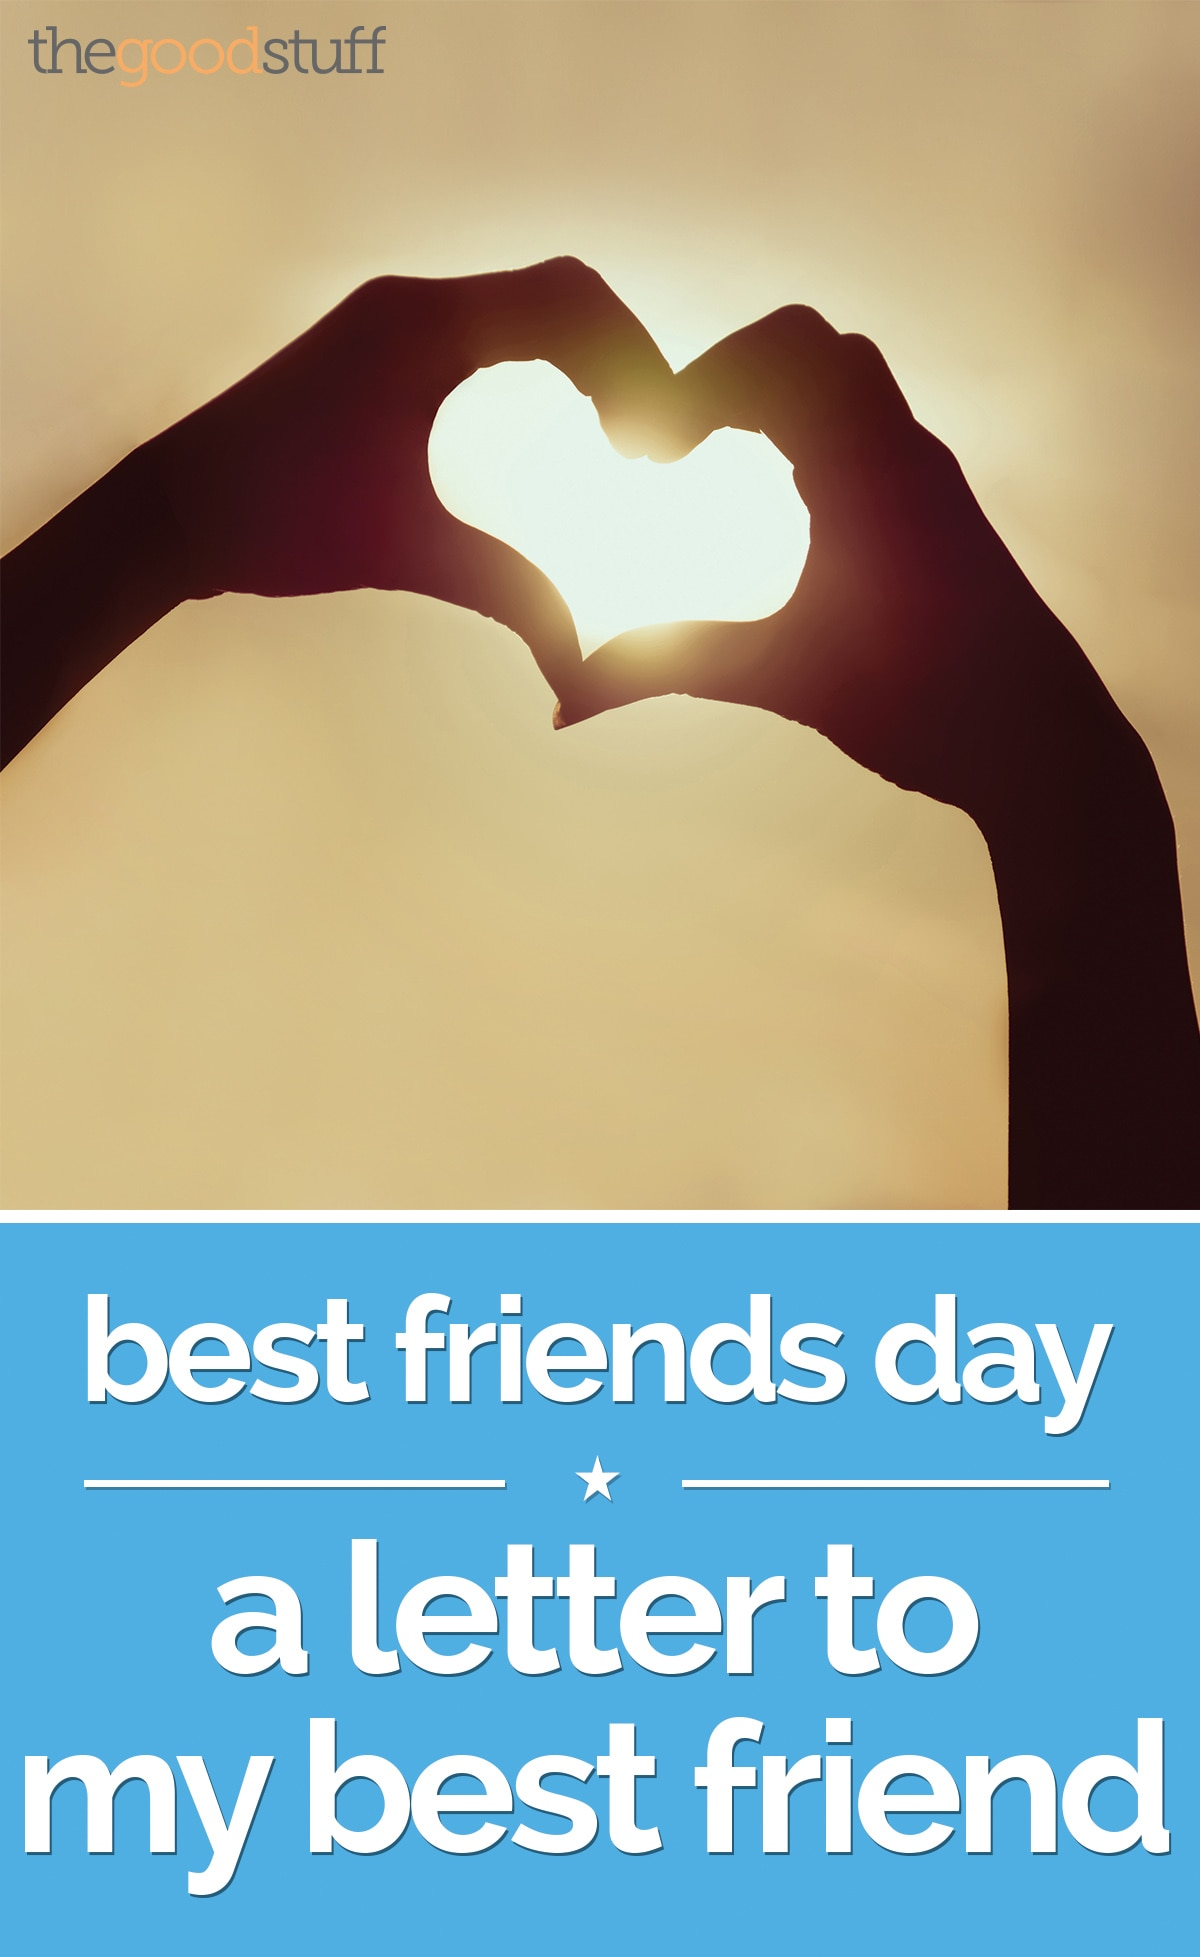 best friends day a